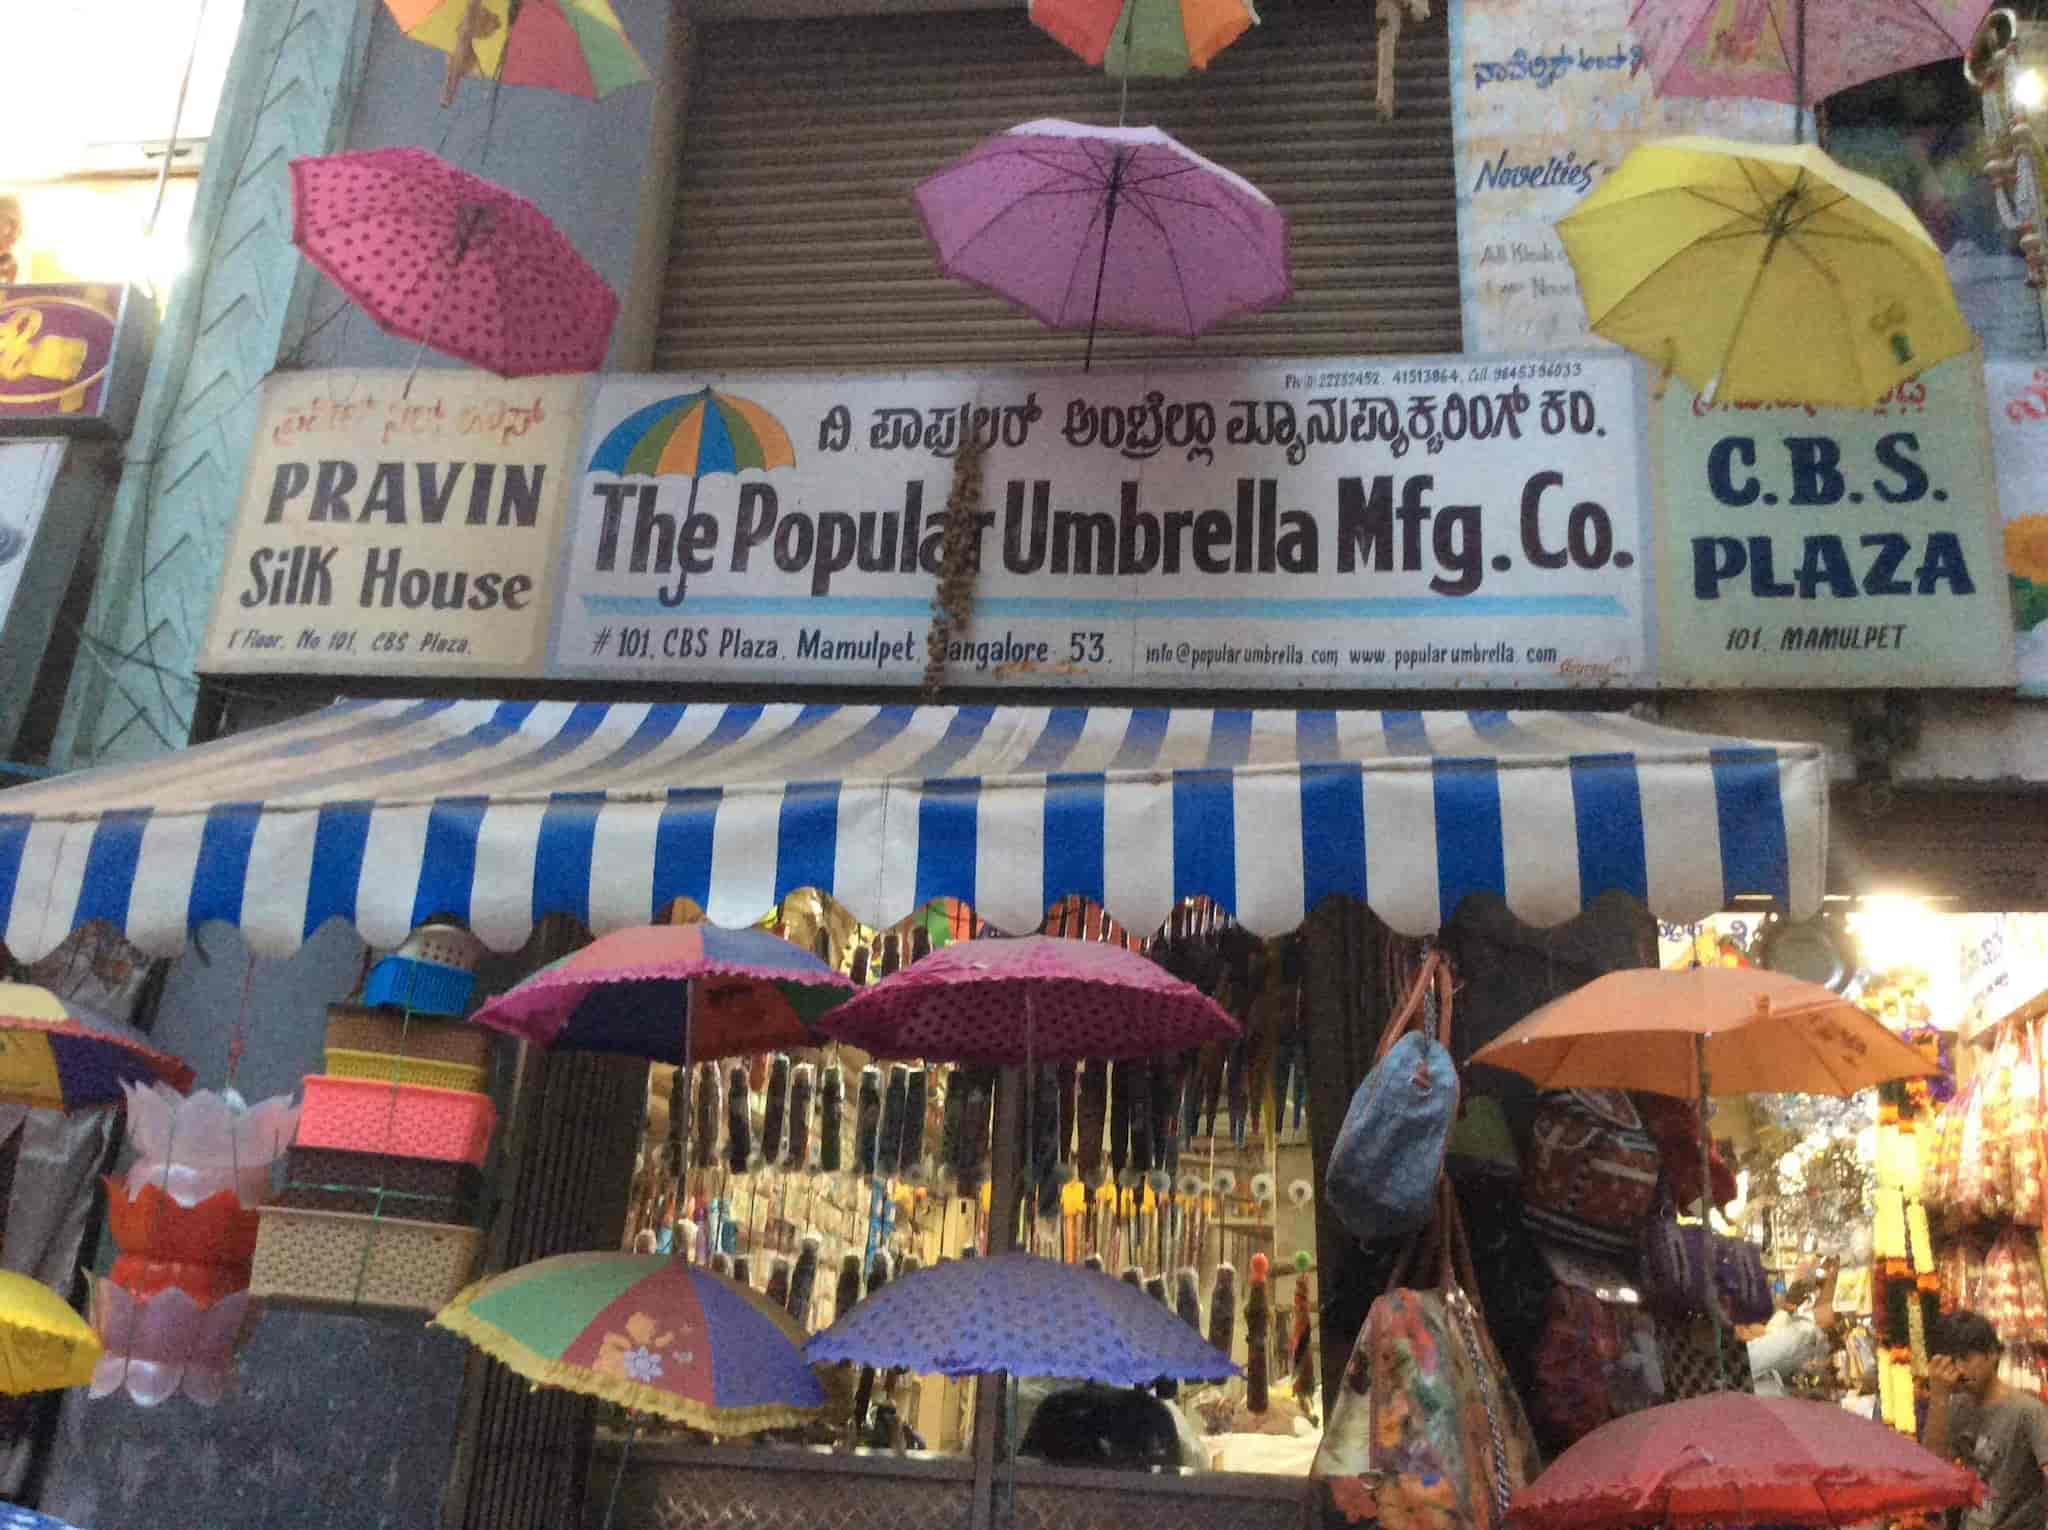 fc2d5e6733751 Popular Umbrella Mfg Co, Mamulpet - Umbrella Manufacturers in Bangalore -  Justdial